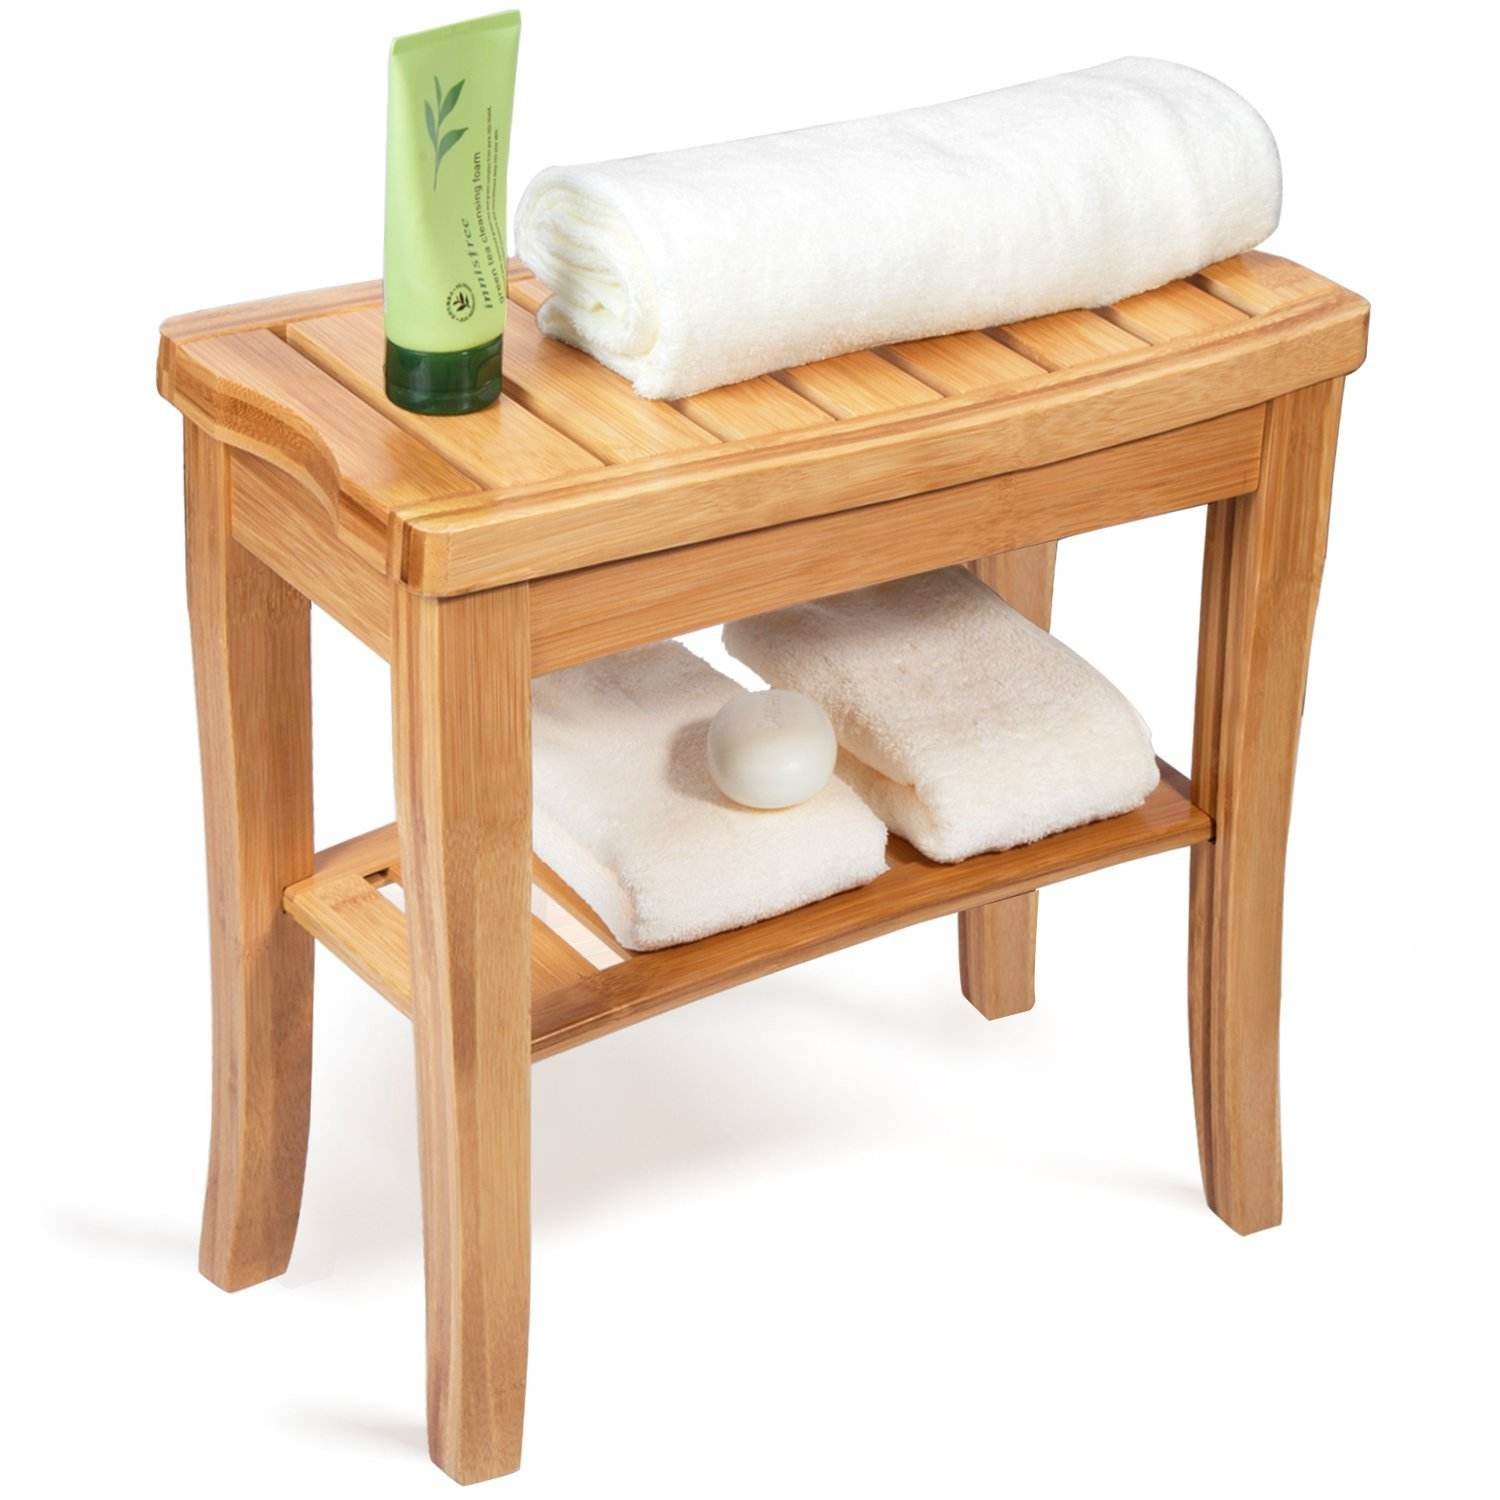 Bamboo Shower Bench Stool Wood Wood Seat Bench Organizer Stool with Storage Shelf